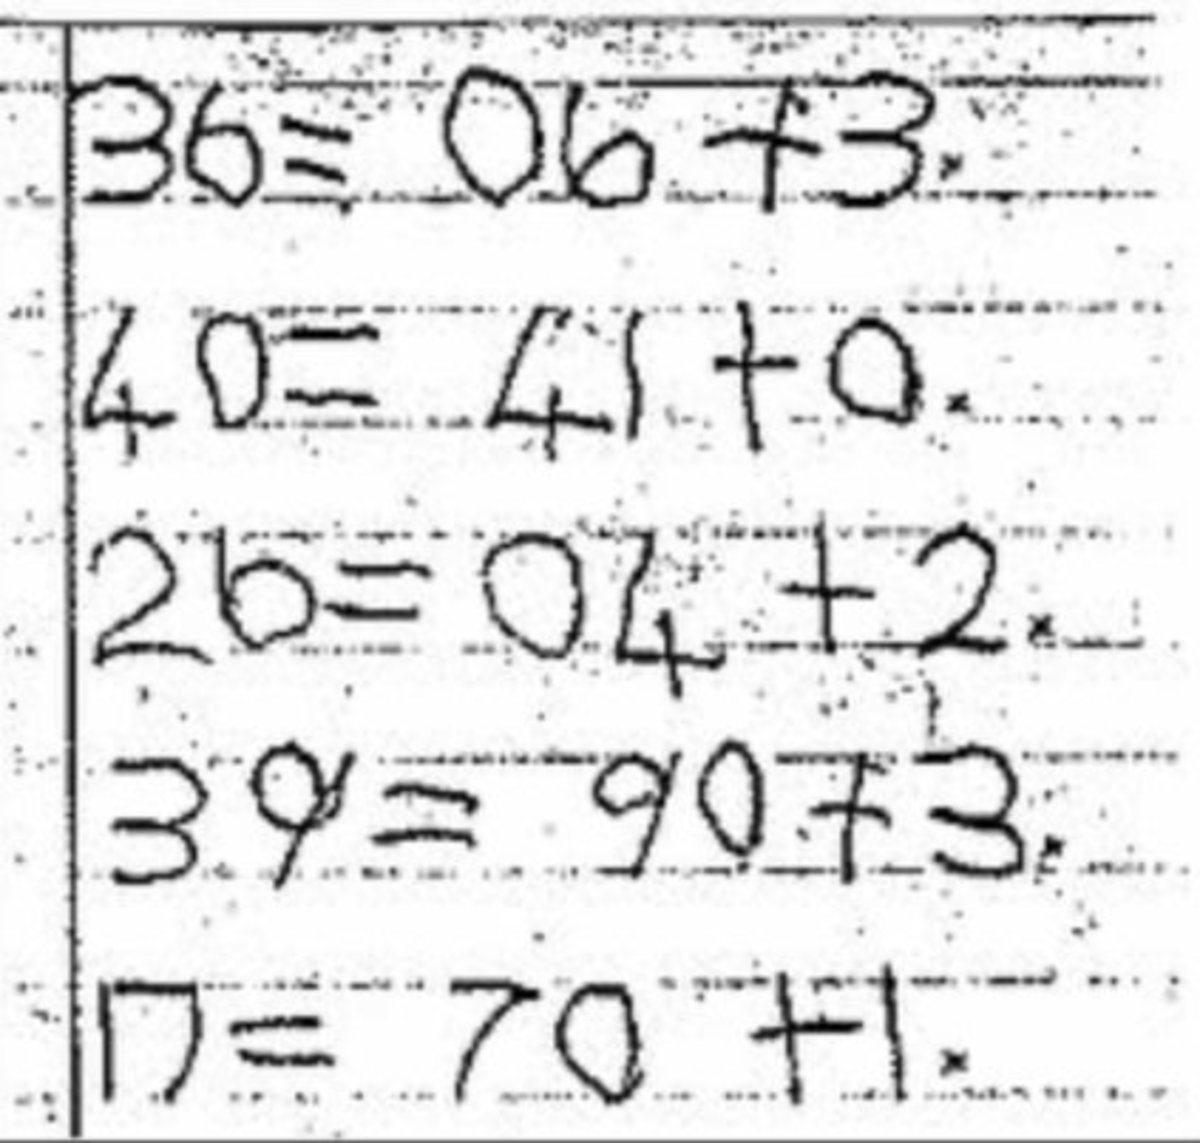 Dyscalculia may be similar to dyslexia but have more of an impact on the perception of numerical digits than other graphemes like letters.